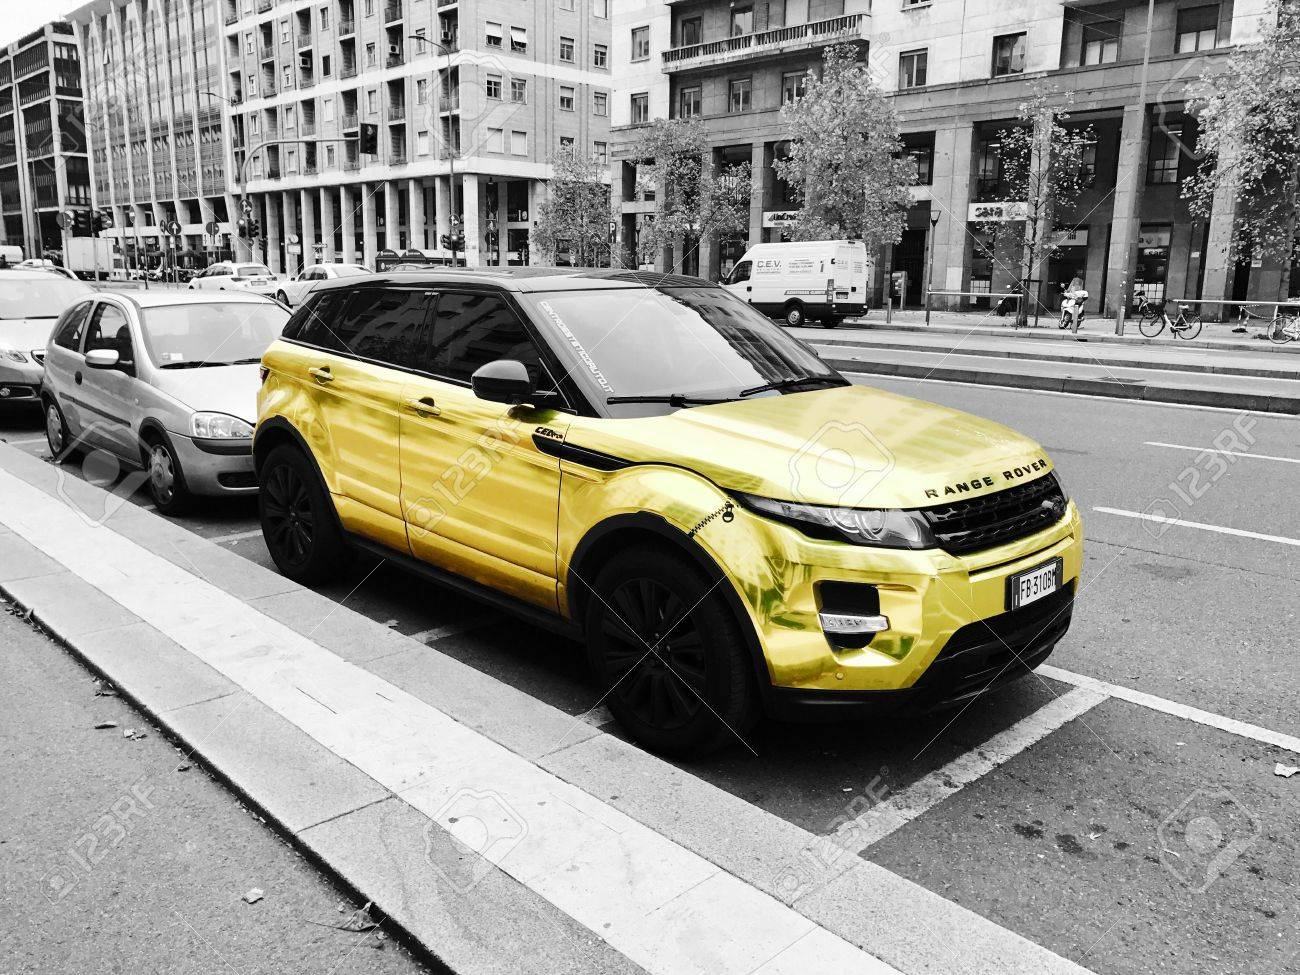 Golden Range Rover Stock Photo Picture And Royalty Free Image - Range rover stock